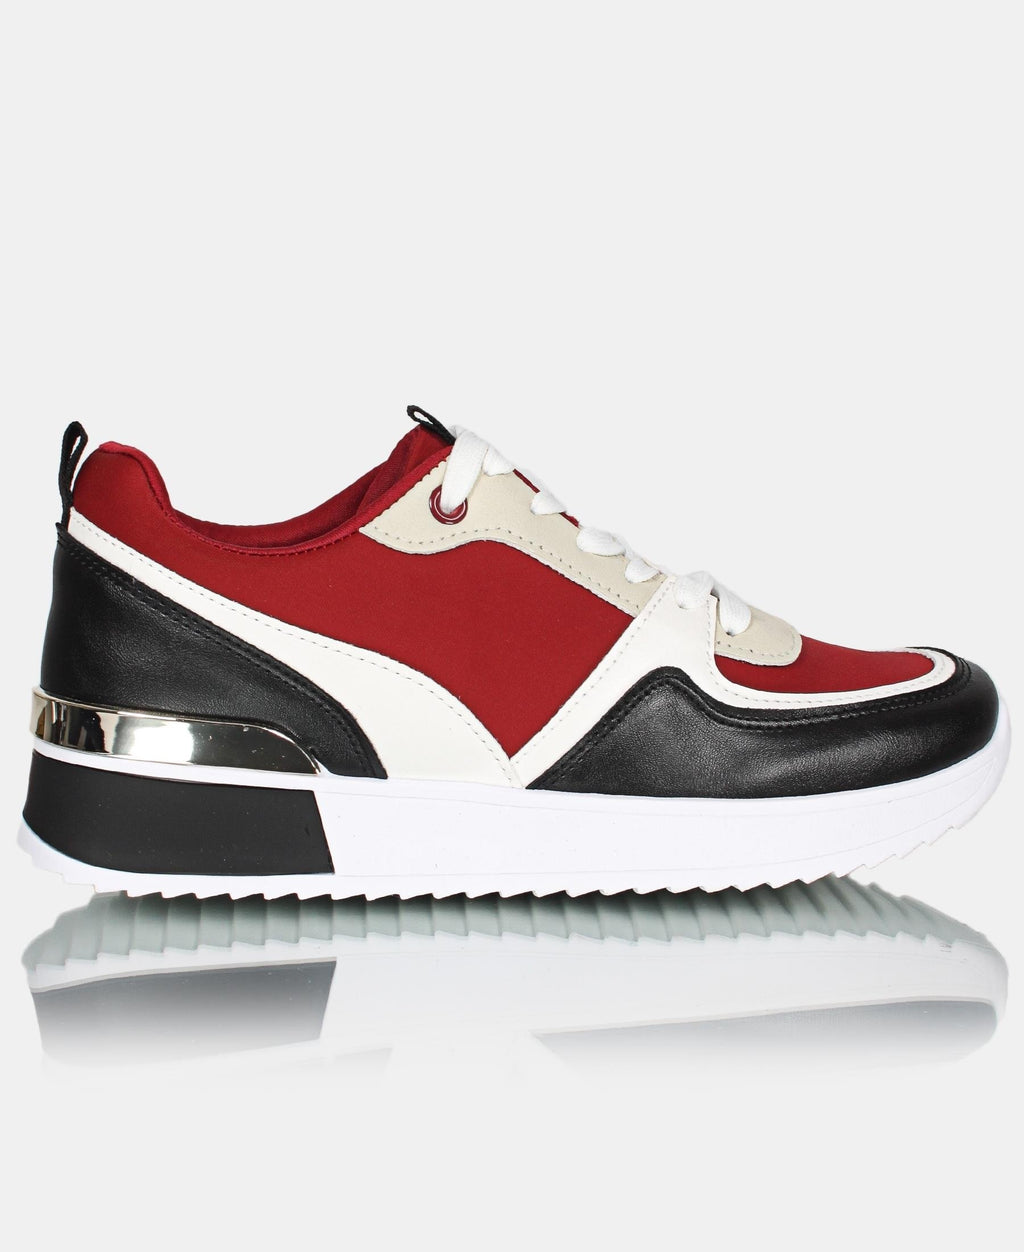 Ladies' Honey Sneakers V2 - Burgundy